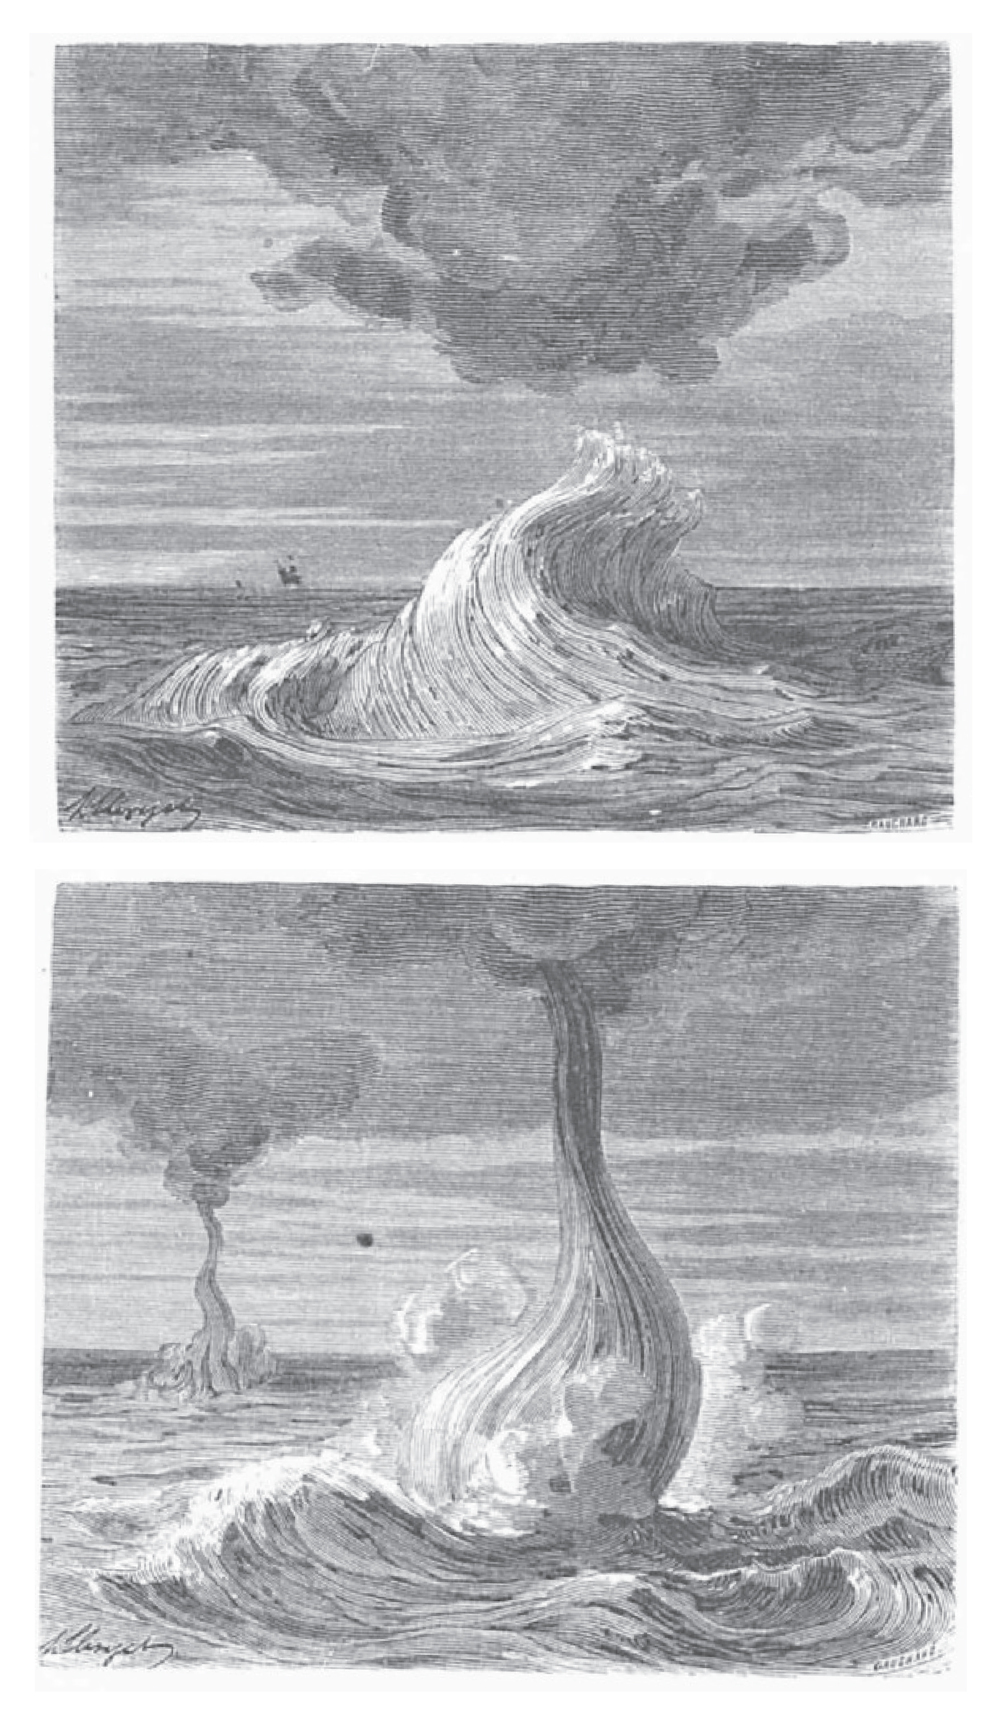 Depictions of waterspouts from  Thunder and Lightning  (1866) by the French science writer and balloonist  Wilfrid de Fonvielle  (1824–1914).  The evolution of waterspouts that occurred on 17 May 1773 off  Cape Stephens (New Zealand)  based on a described by  Georg Forester  (1754–94) from    A Voyage Round the World    (1777) an account of   James Cook 's  second voyage to the Pacific  (1772–75).